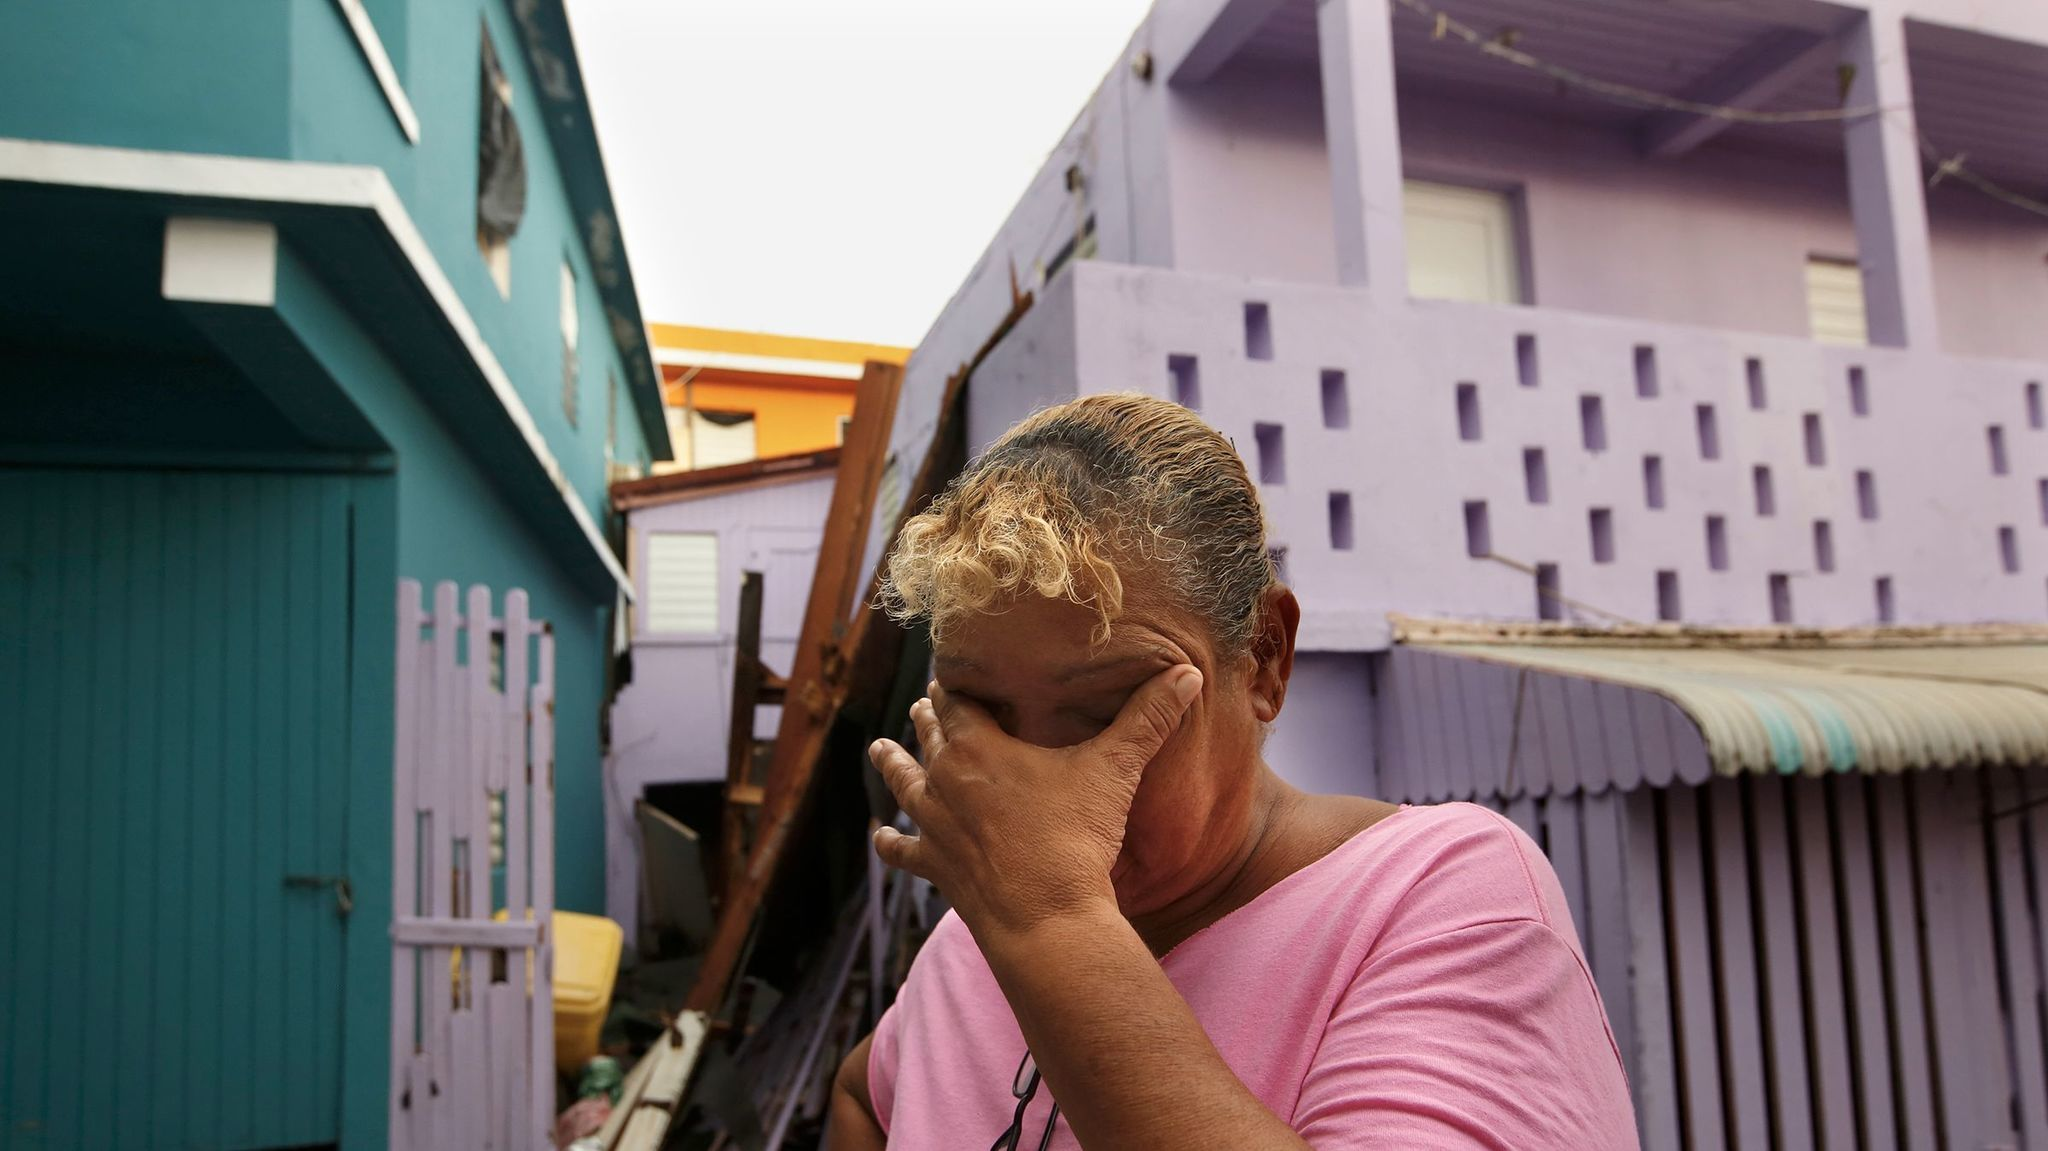 Sonia Viruet, 61, who lives in the La Perla neighborhood, takes stock after Hurricane Maria caused widespread damage across Puerto Rico.